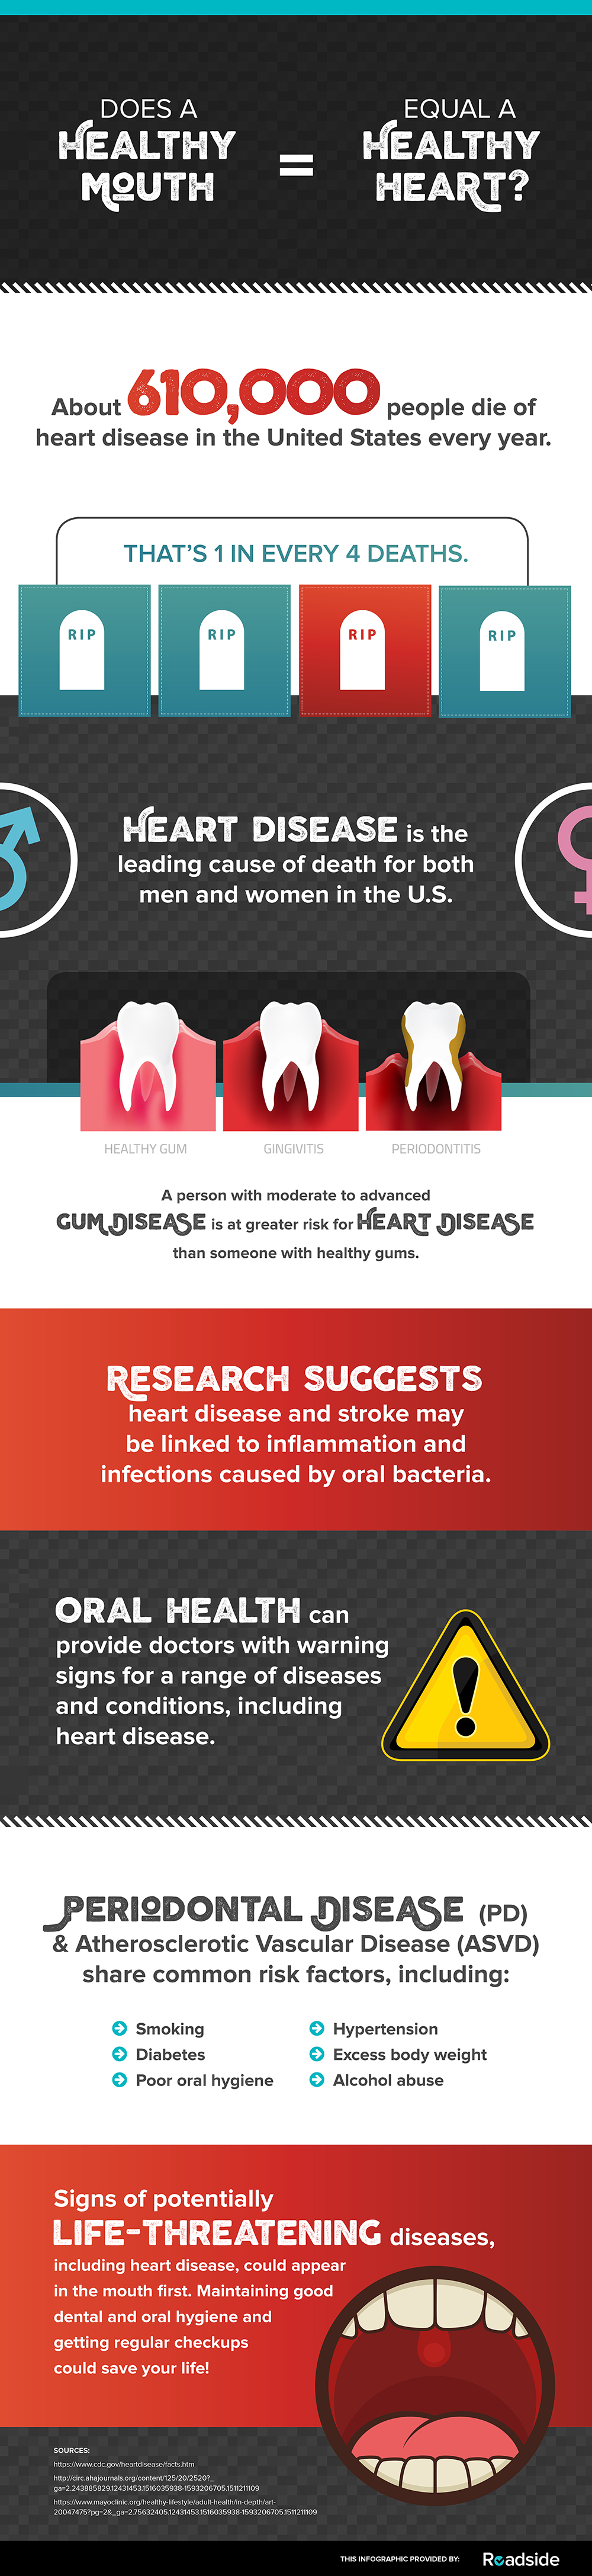 Learn the connections between a healthy mouth and healthy heart in this infographic.